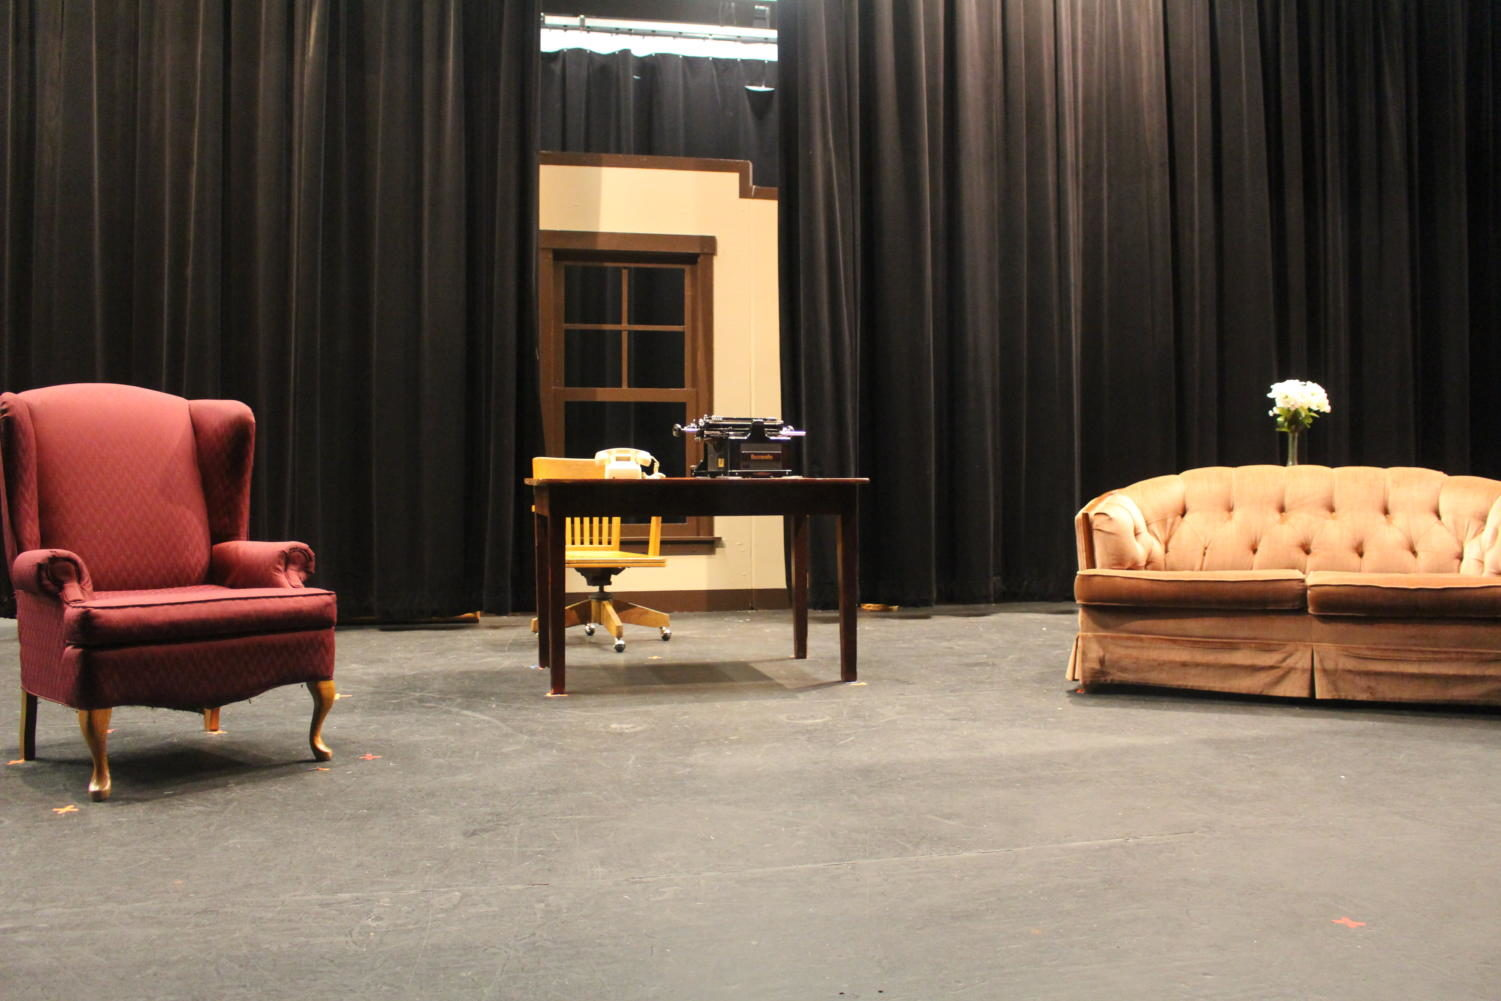 Stage for Rehearsal for Murder